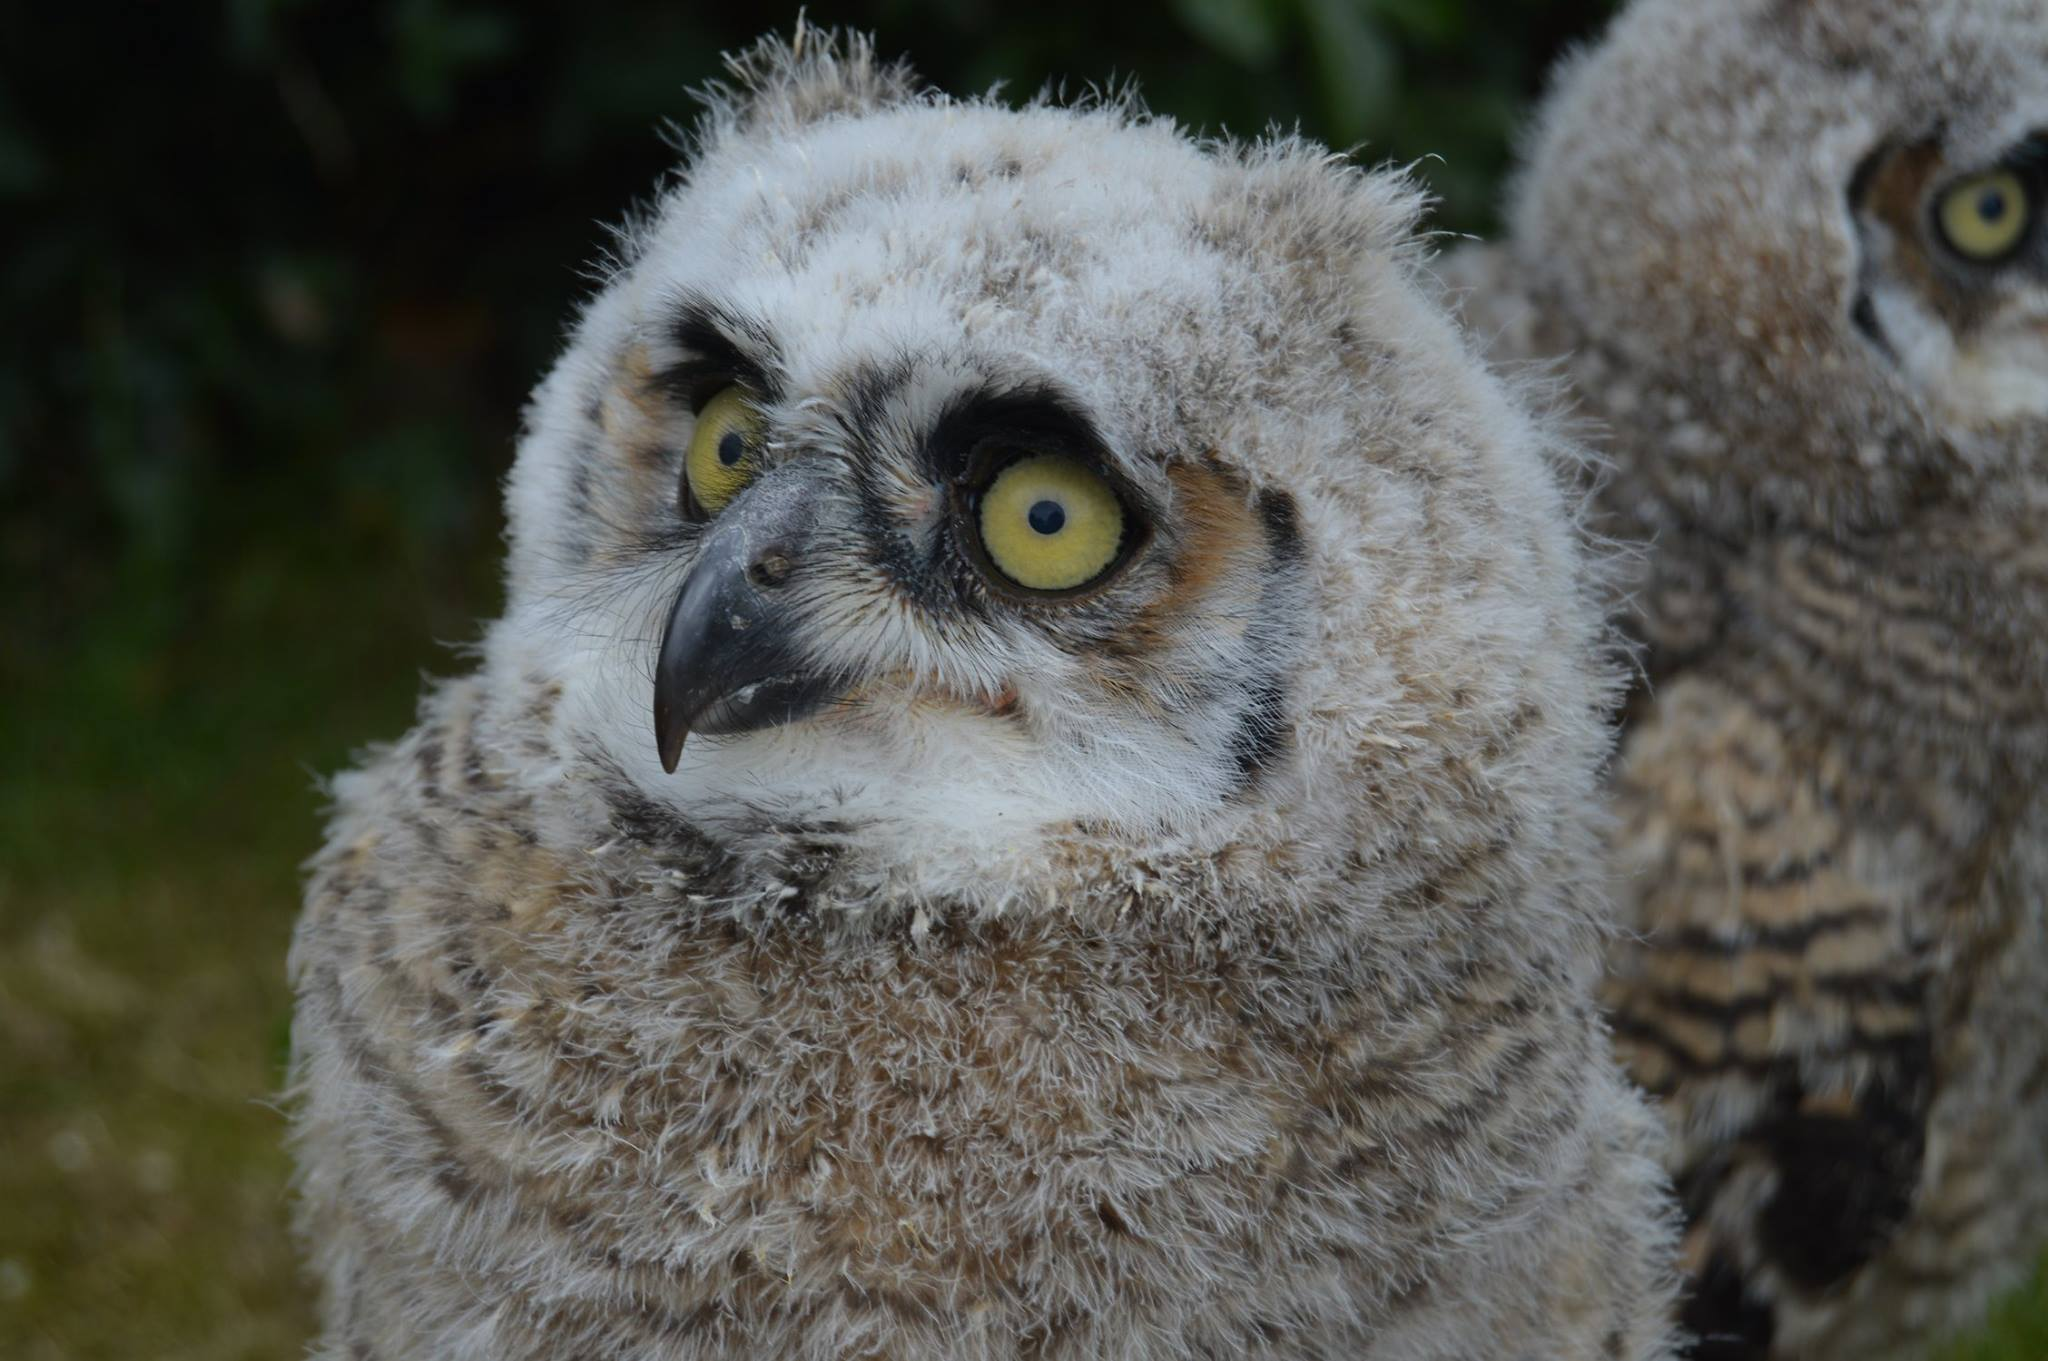 Baby great horned owl looking fluffy